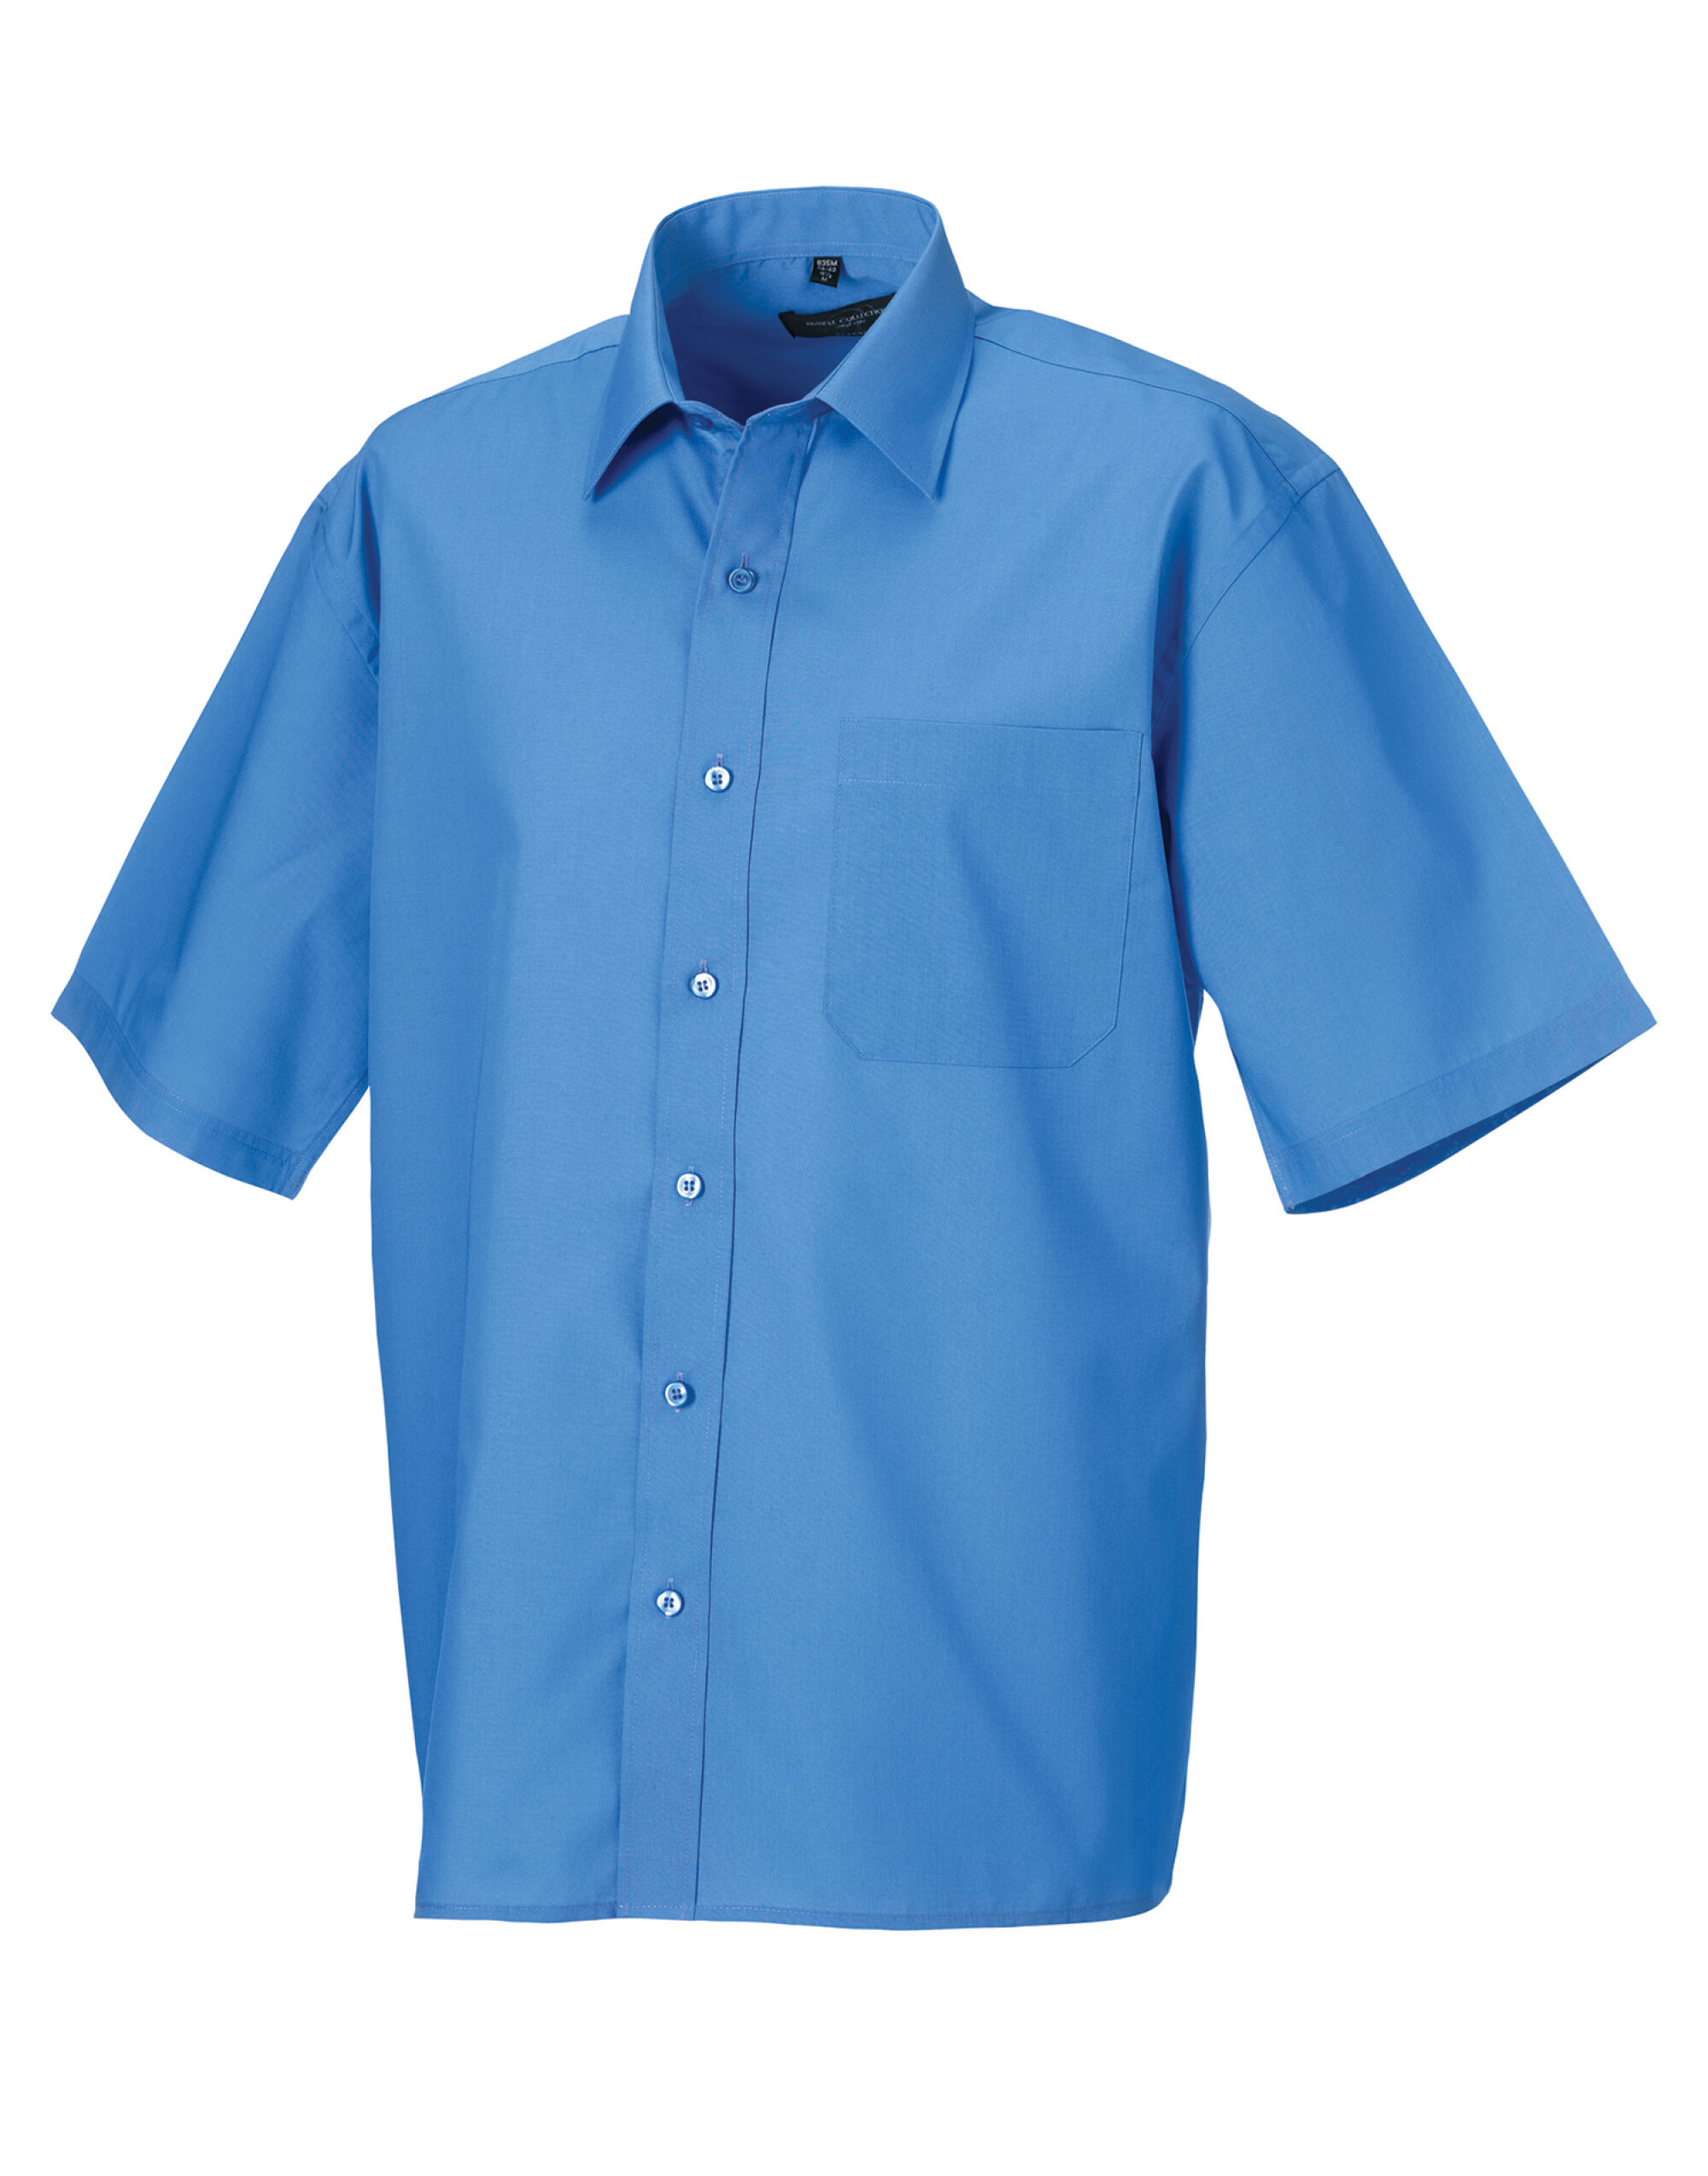 Men's Short Sleeve Polycotton Easy Care Poplin Shirt